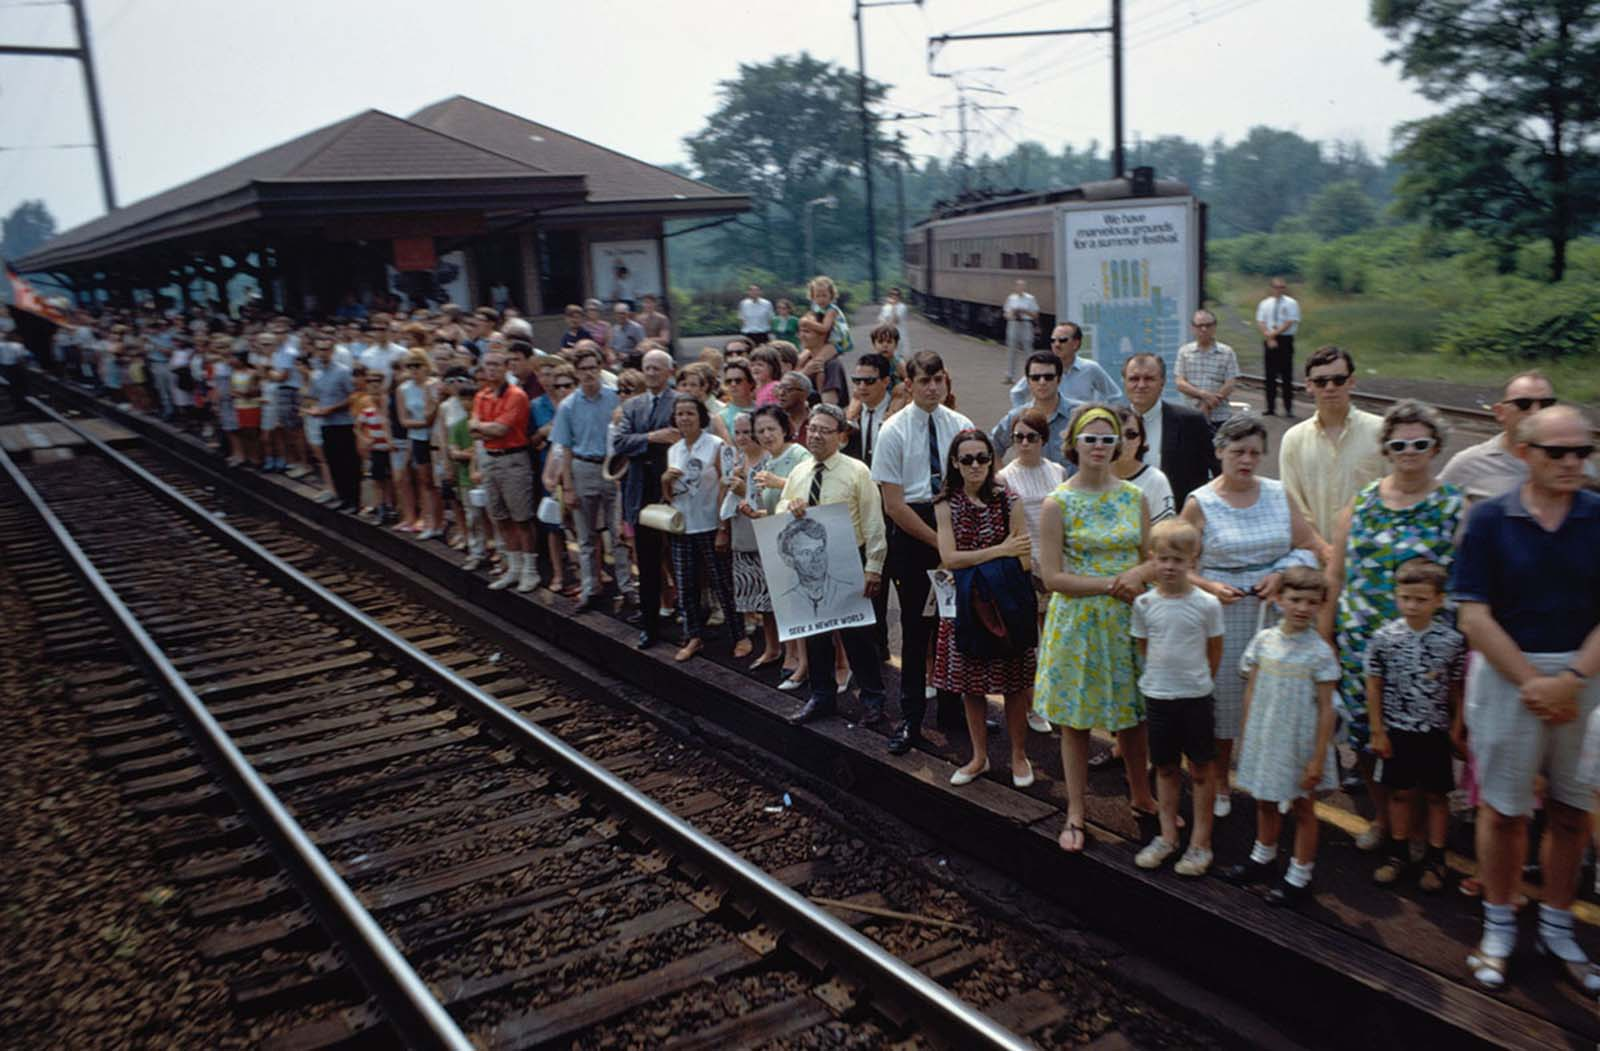 The funeral train rolls through Princeton Junction, New Jersey, on June 8, 1968. Several people hold portraits of Robert F. Kennedy, including a man whose poster reads